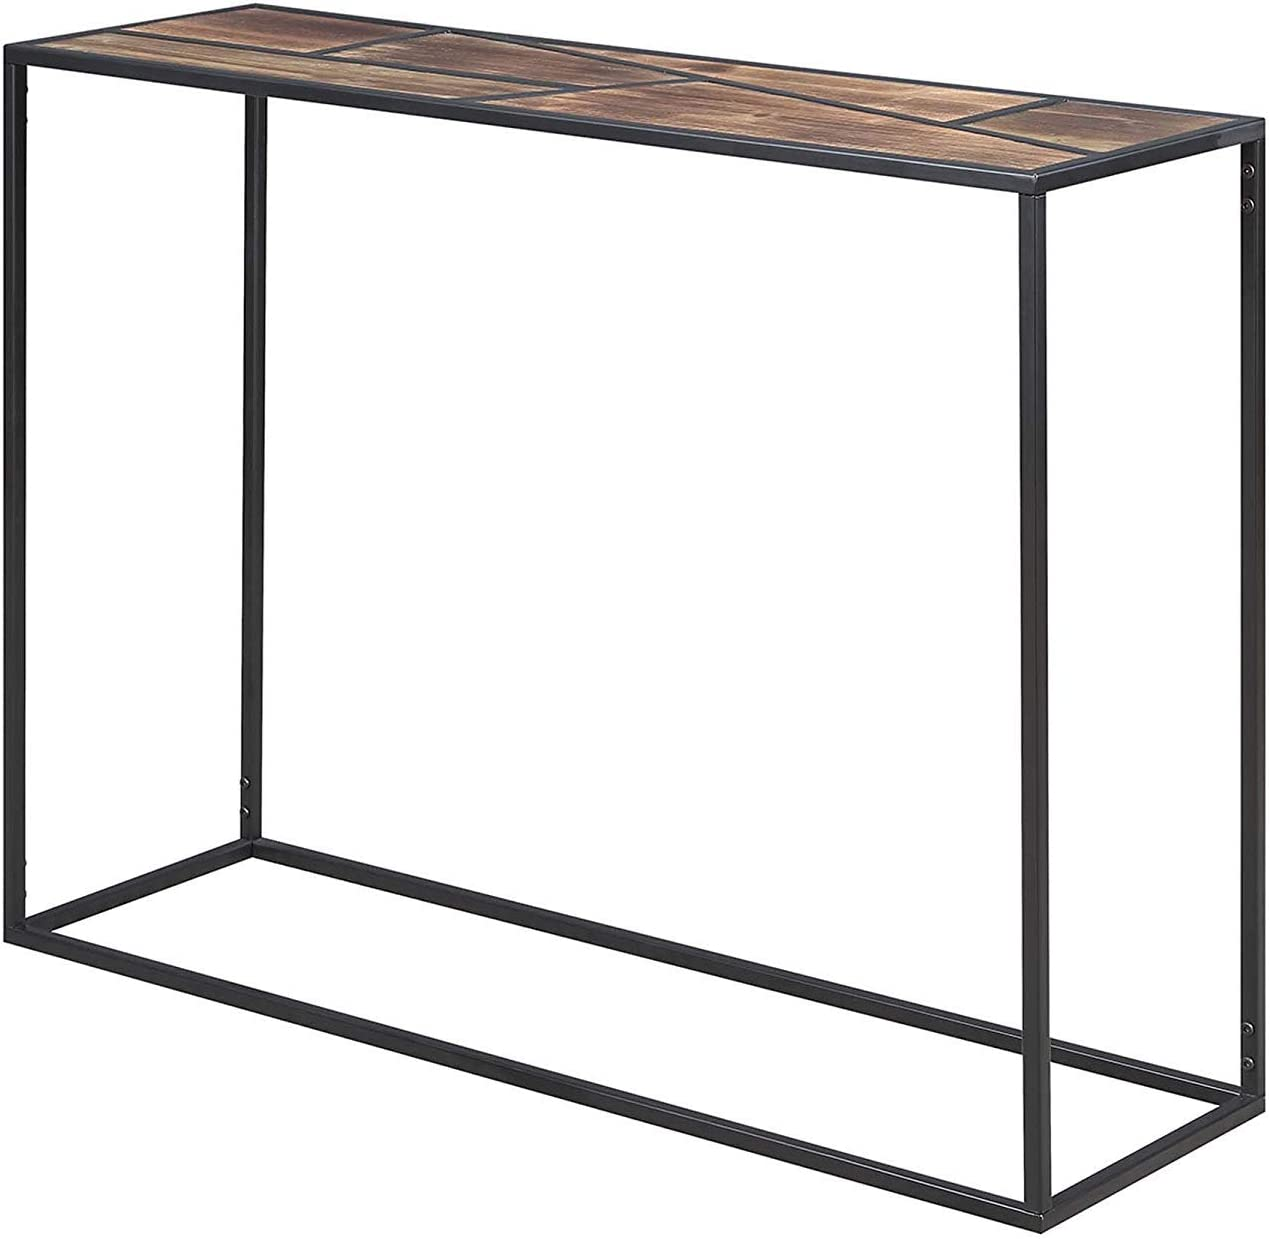 Convenience Concepts Geo Console Table, Wood Top / Black Frame